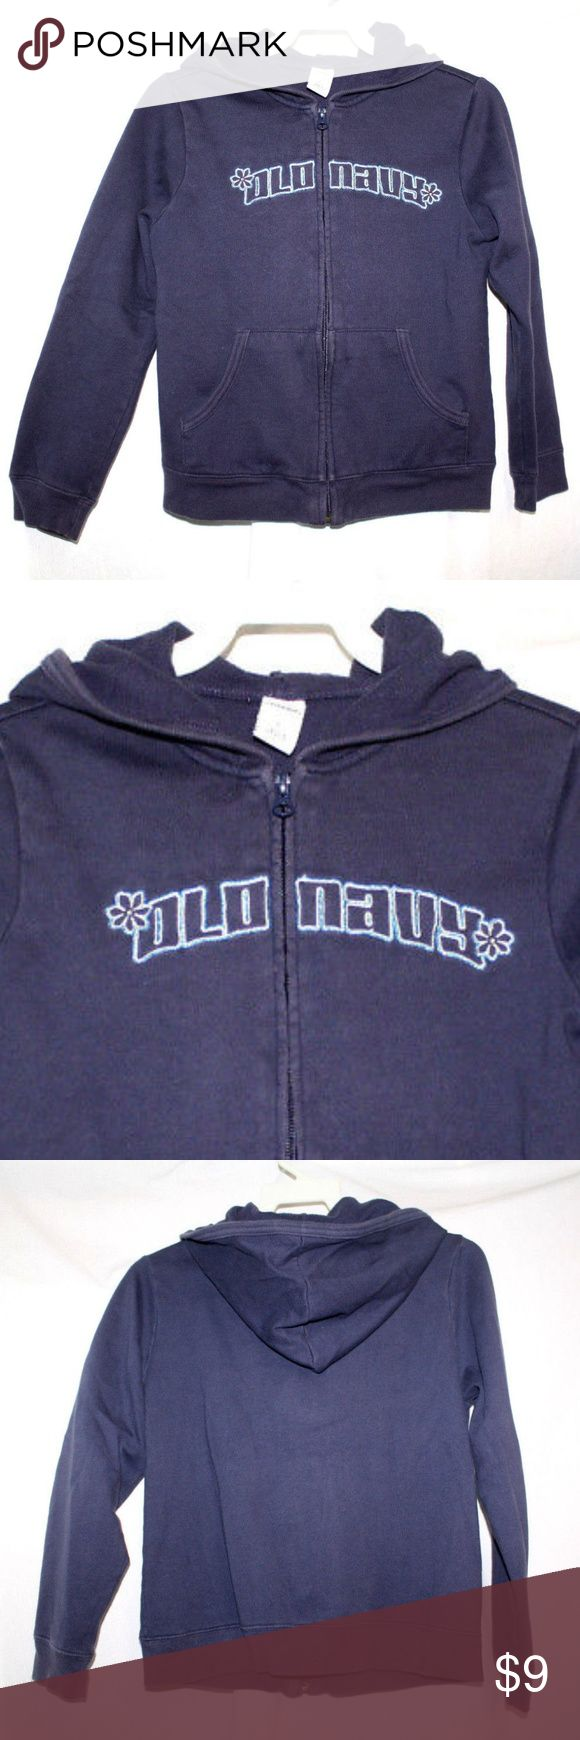 Old Navy Girls Size Large Navy Blue Sweat Jacket Old Navy Girls Size Large Navy Blue Althletic Sweat Jacket Full Zip Spell Out.  Hooded jacket in a lightweight fleece made of 80% Cotton and 20% Polyester.  Kangaroo pocket and ribbing at cuff and hem.  'Old Navy embroidered in shiny blue and white thread.  Flat lay measurements are:  Chest:     17 inches Sleeve:    19 inches Length:    18 1/2 inches Old Navy Sweaters